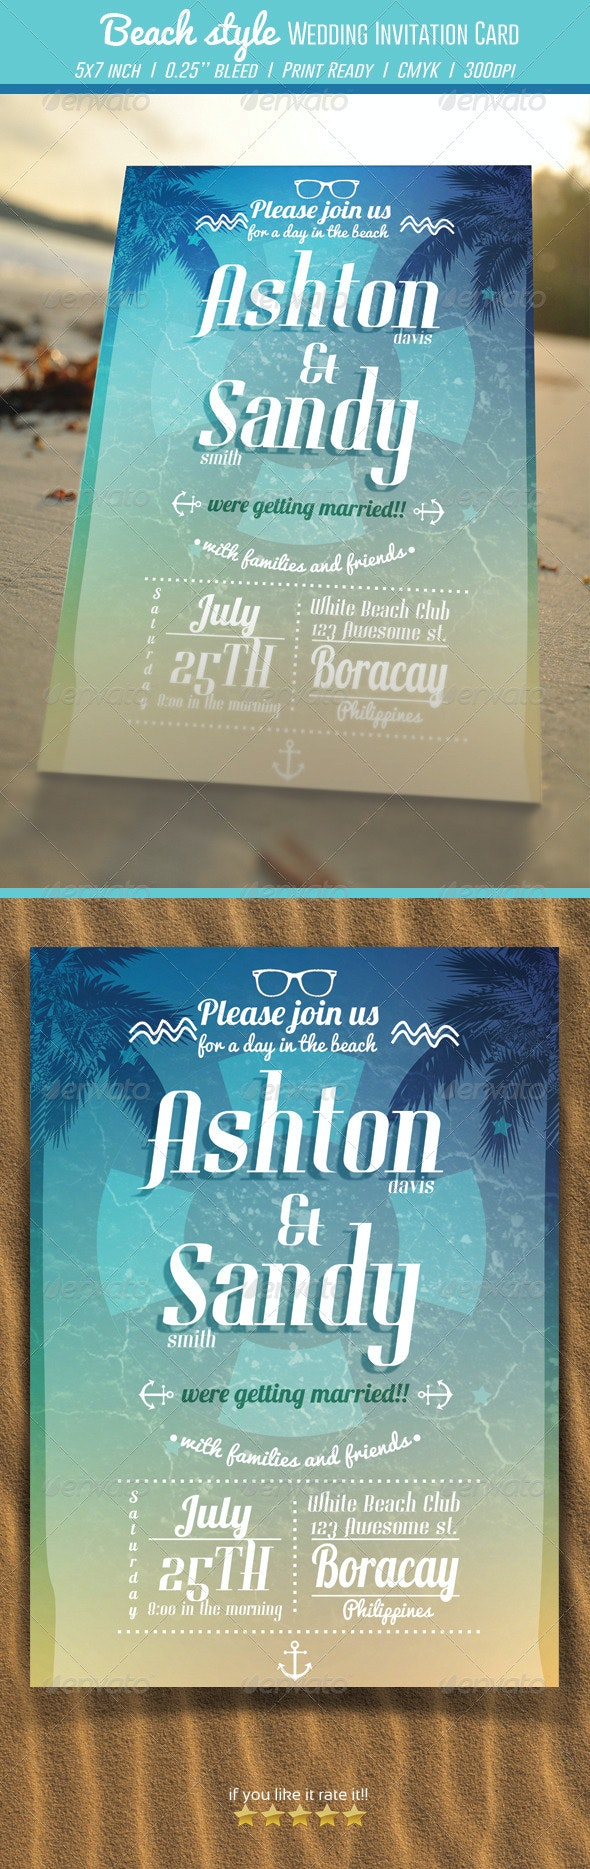 Beach Style Wedding Invitation Card - Weddings Cards & Invites